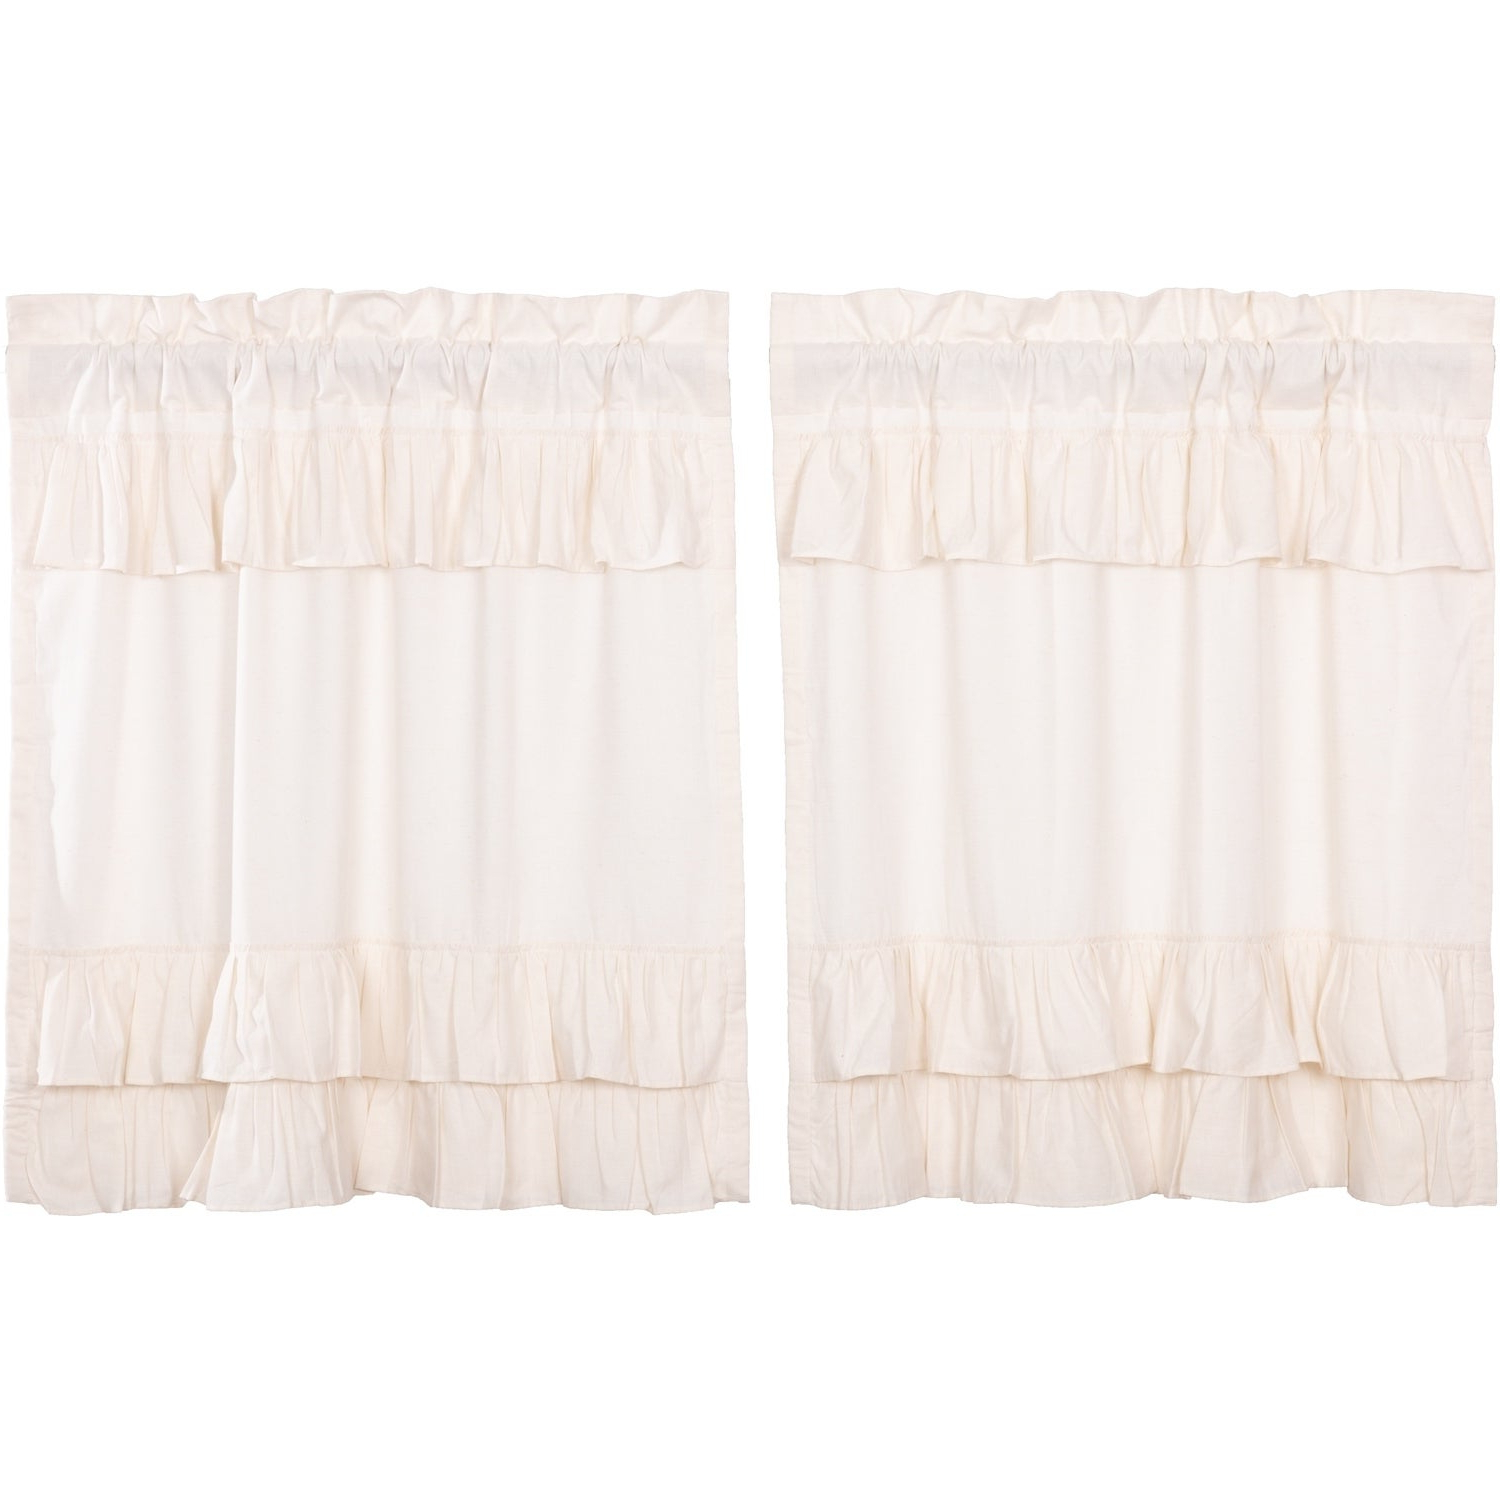 Farmhouse Kitchen Curtains Vhc Simple Life Flax Tier Pair Rod Pocket Cotton Linen Blend Solid Color Flax Throughout Most Current Rod Pocket Cotton Solid Color Ruched Ruffle Kitchen Curtains (View 5 of 20)